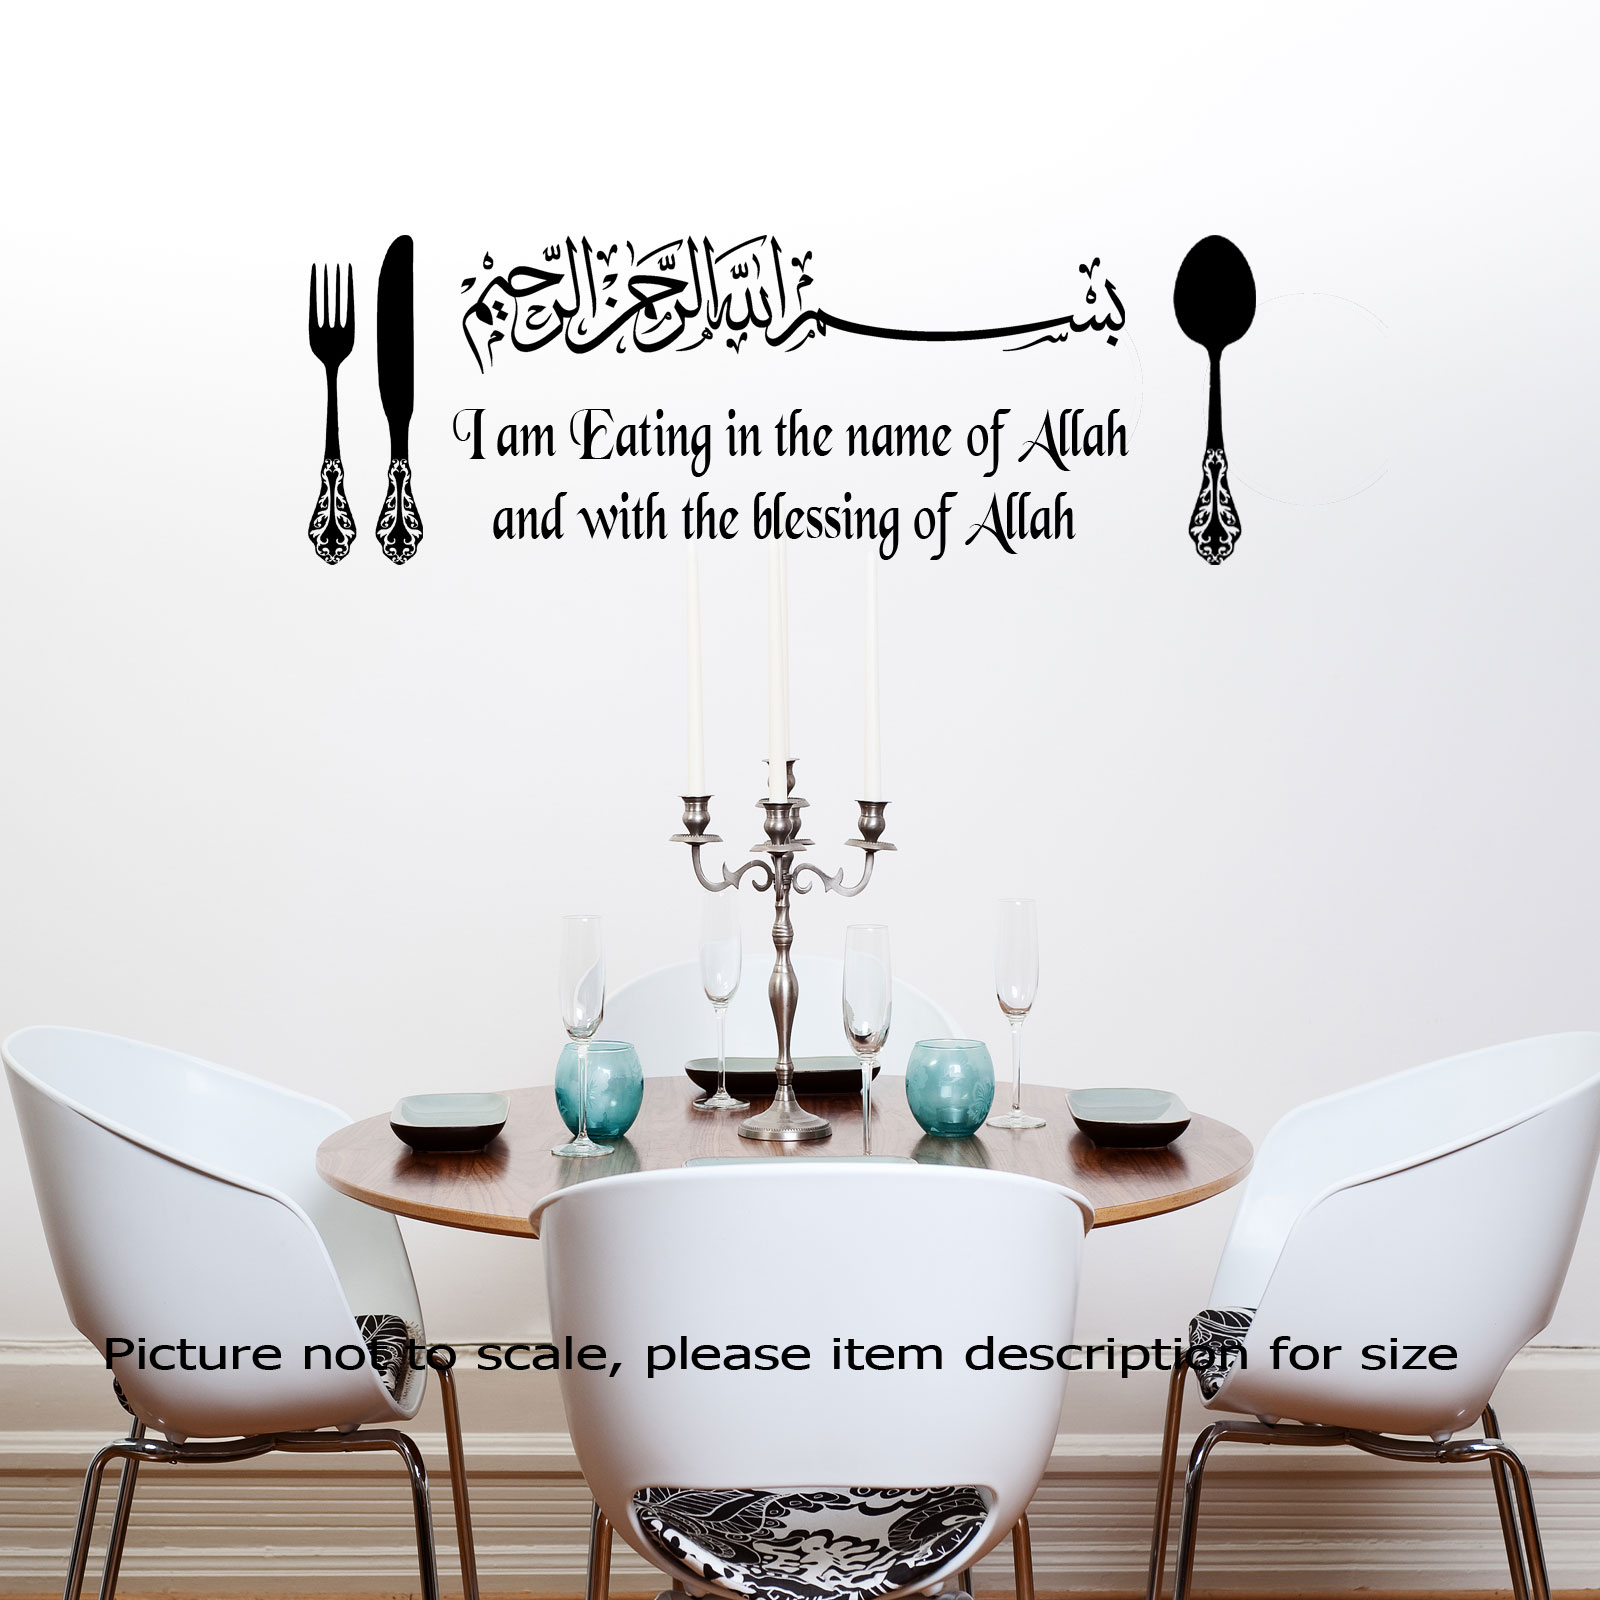 Captivating Dining Room Islamic Wall Stickers  I Am Eating With Name Of Allah And In The Blessing Of Allah Bismillah Wall  Stickers Decal In Black